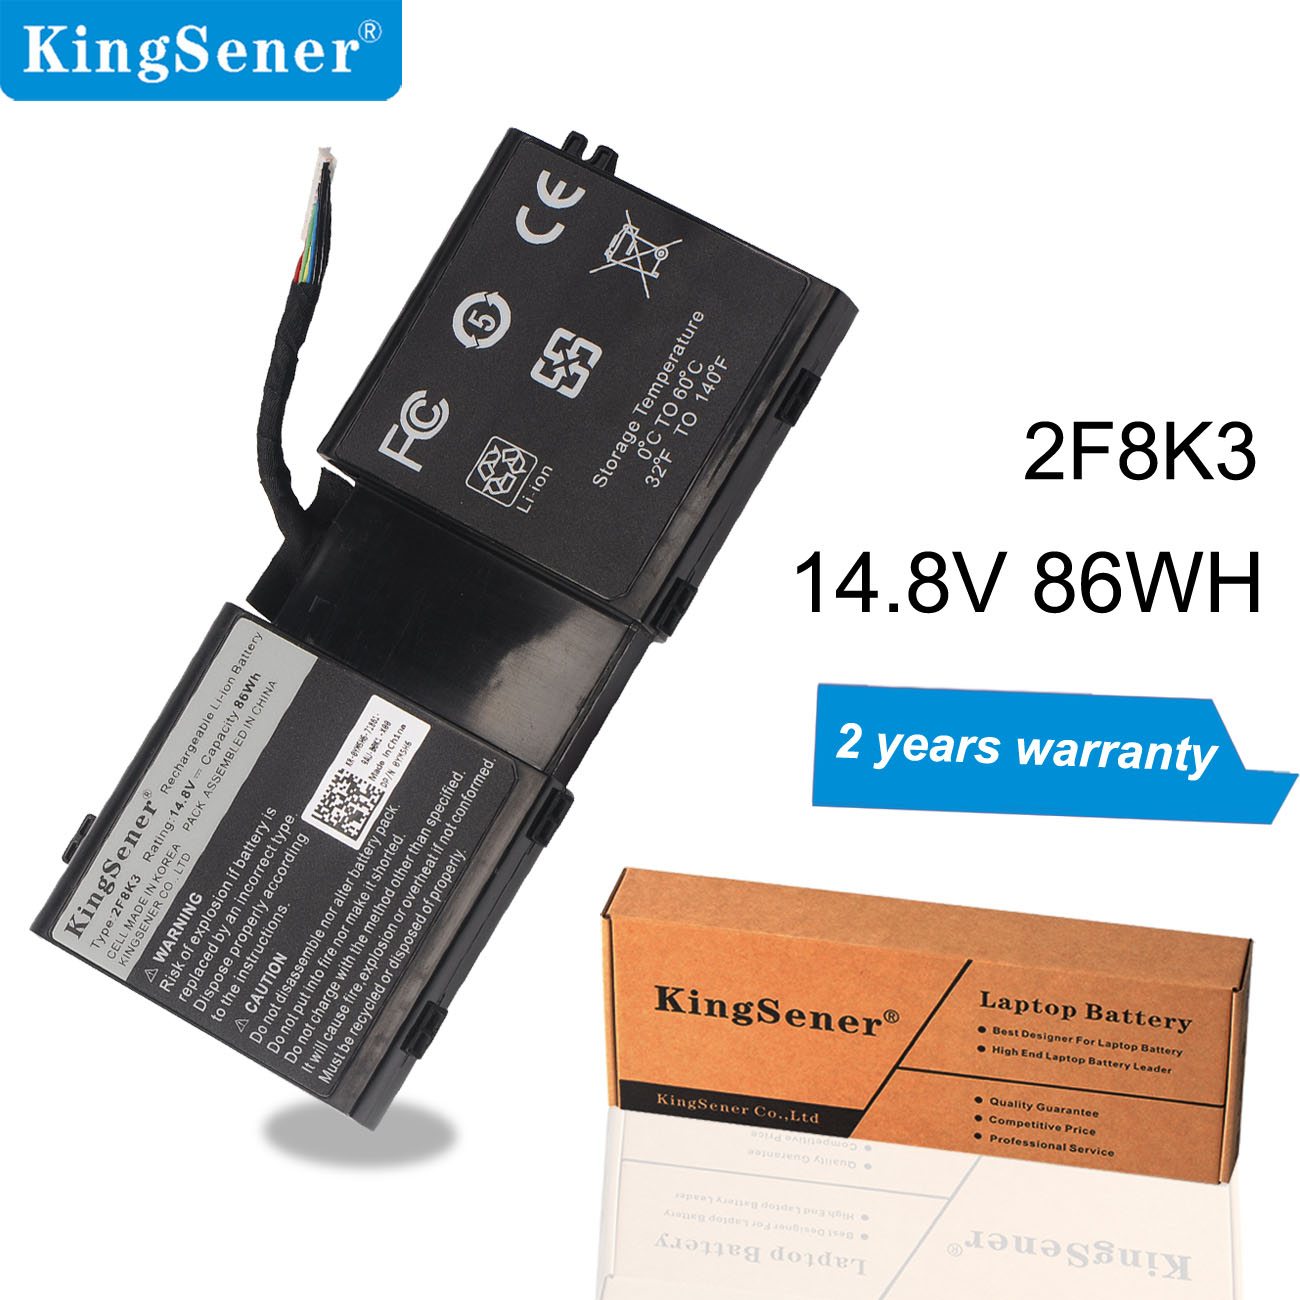 Kingsener 2F8K3 Laptop Battery For Dell <font><b>Alienware</b></font> 17 <font><b>R1</b></font> 17X <font><b>M17X</b></font>-R5 <font><b>Alienware</b></font> 18 <font><b>R1</b></font> 18X M18X-R3 Series 02F8K3 KJ2PX 14.8V 86Wh image